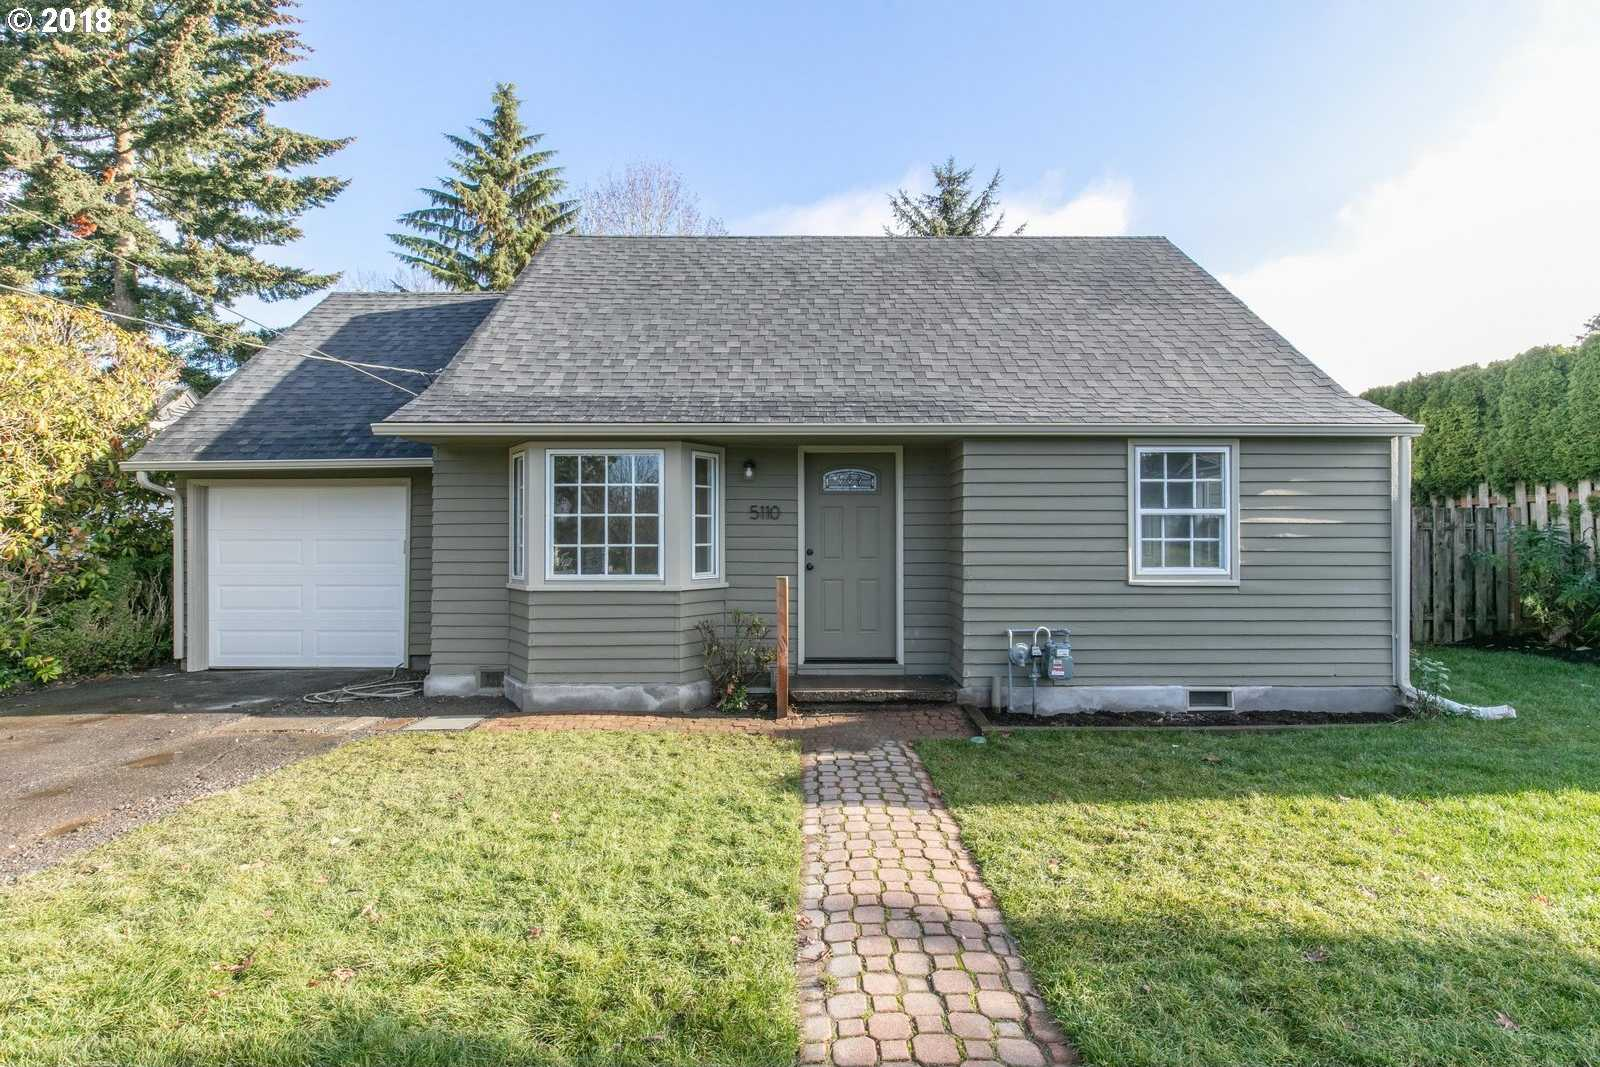 $358,000 - 3Br/1Ba -  for Sale in Cully, Portland